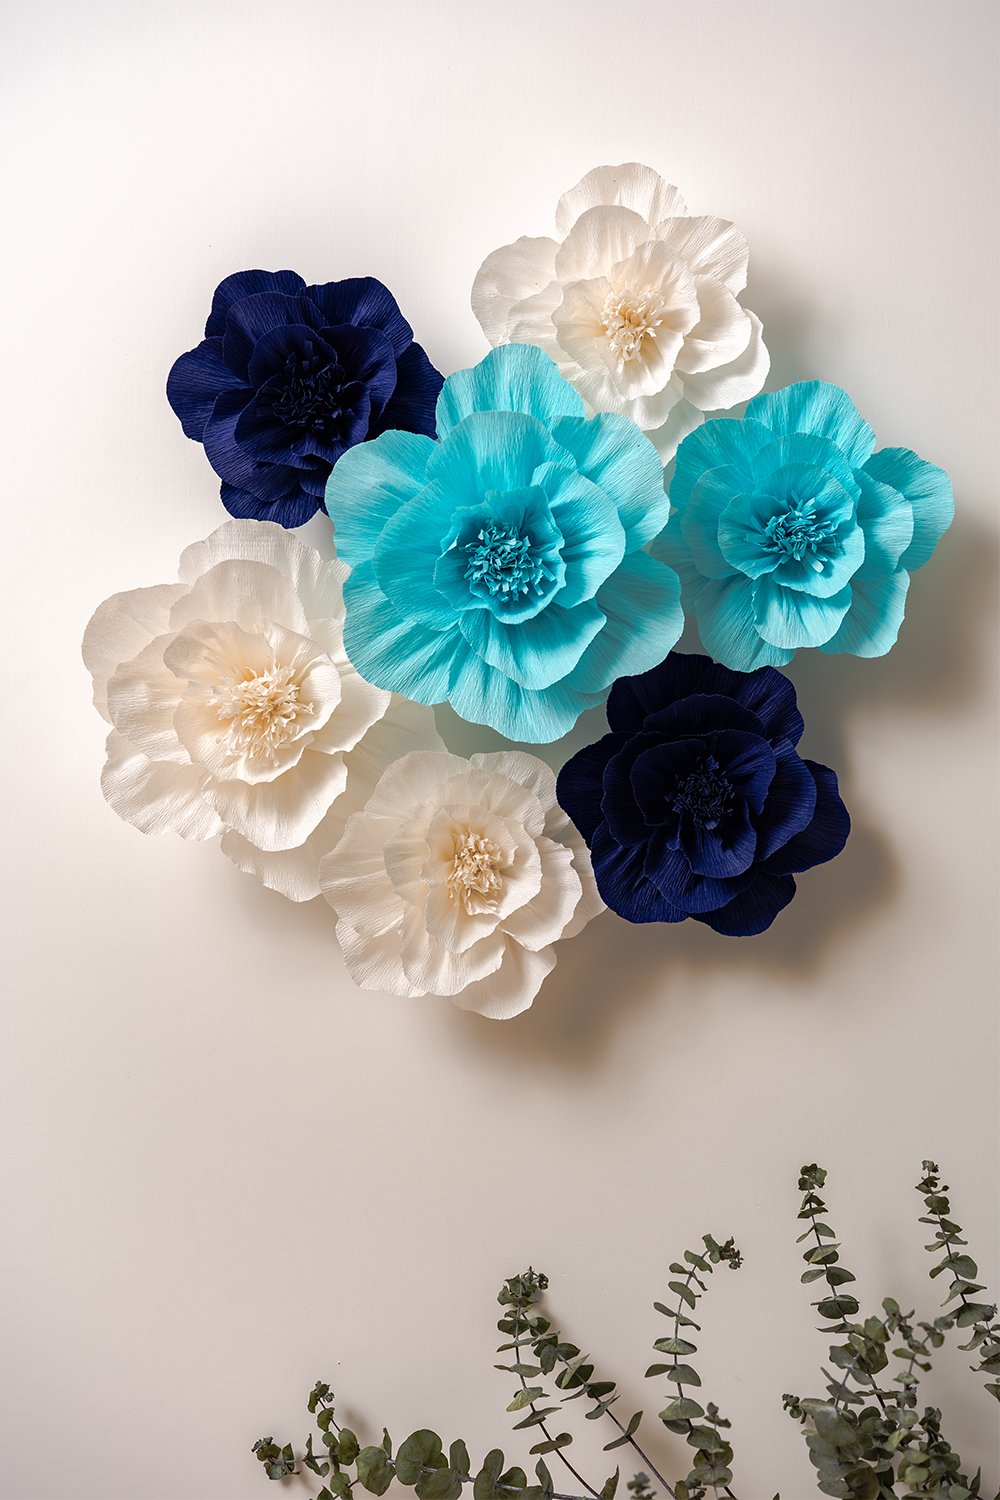 KEY-SPRING-Paper-Flower-Decorations-Crepe-Paper-Flowers-Giant-Paper-Flowers-Navy-Blue-Light-Blue-White-Set-of-7-Large-Paper-Flowers-for-Wedding-Backdrop-Nursery-Wall-Decorations-Baby-Shower